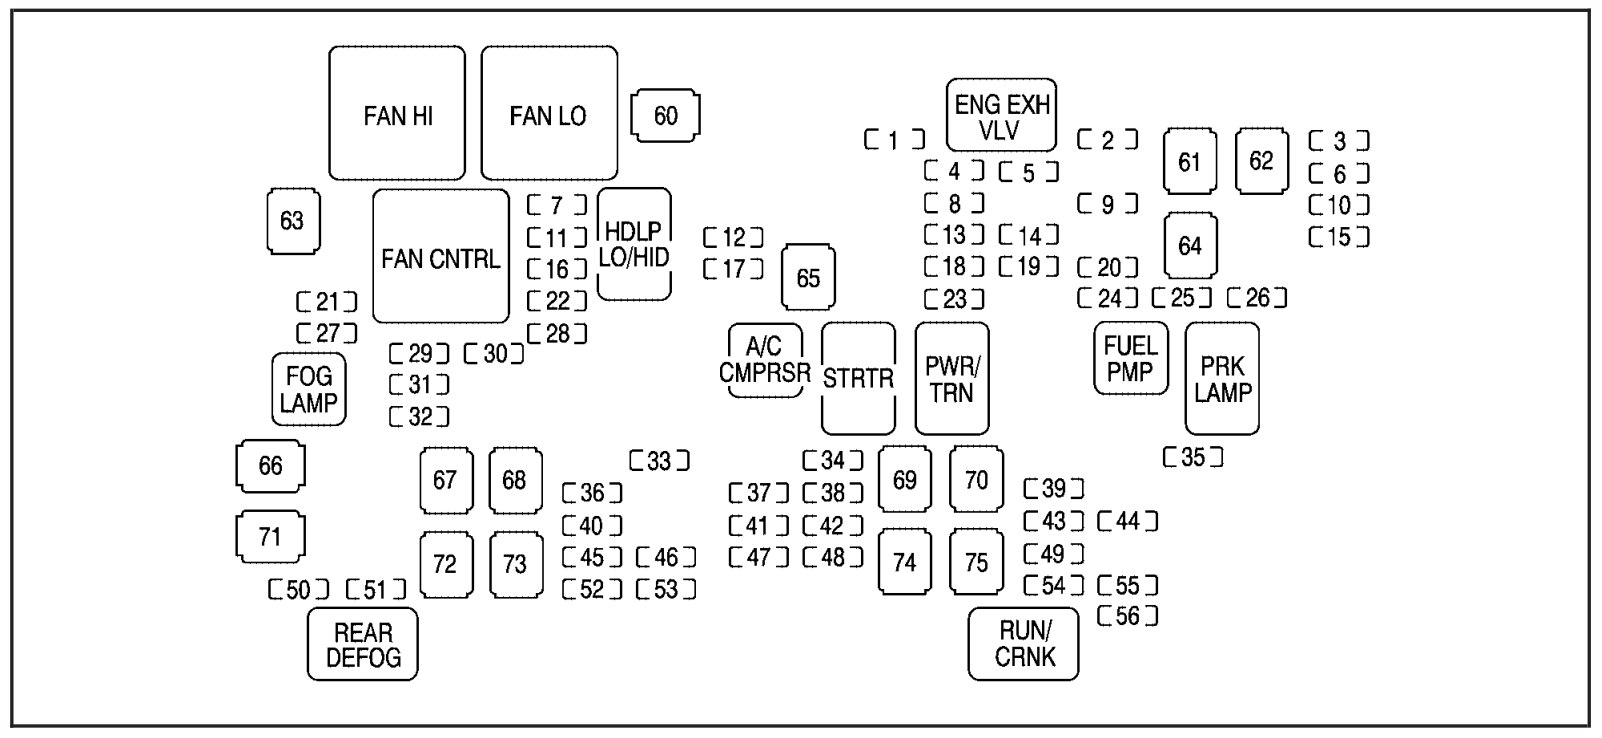 Chevrolet Suburban 2007 Fuse Box Diagram Auto Genius 1998 Dodge Ram 1500 52l Ignition Engine Compartment